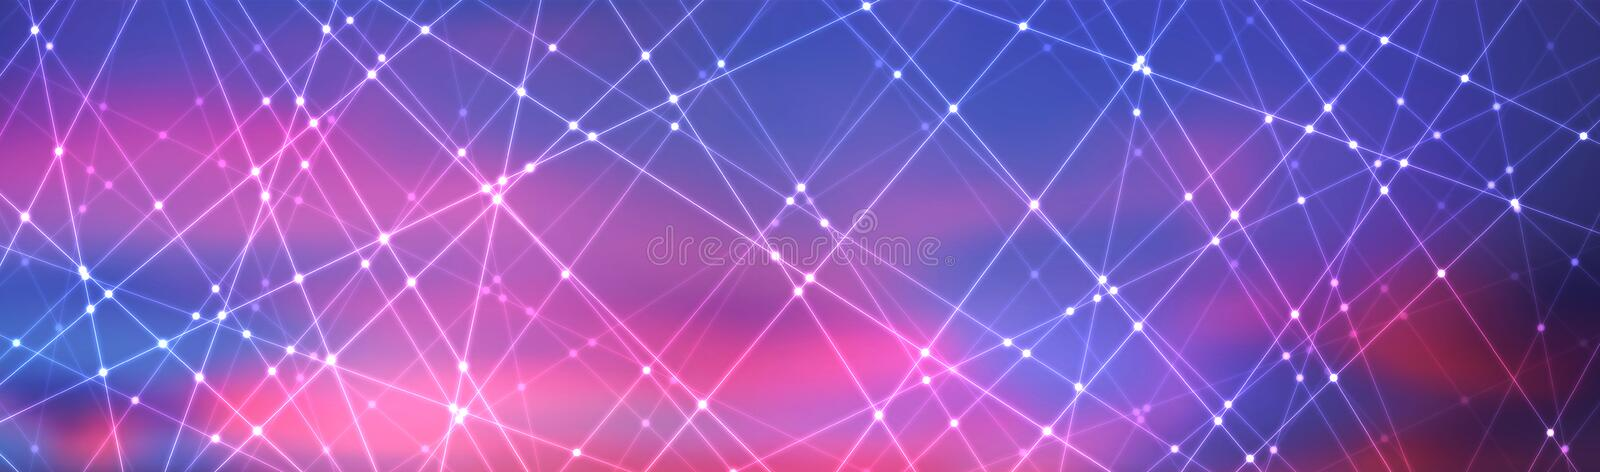 Line and dot pattern and colorful background. Technology concept stock illustration